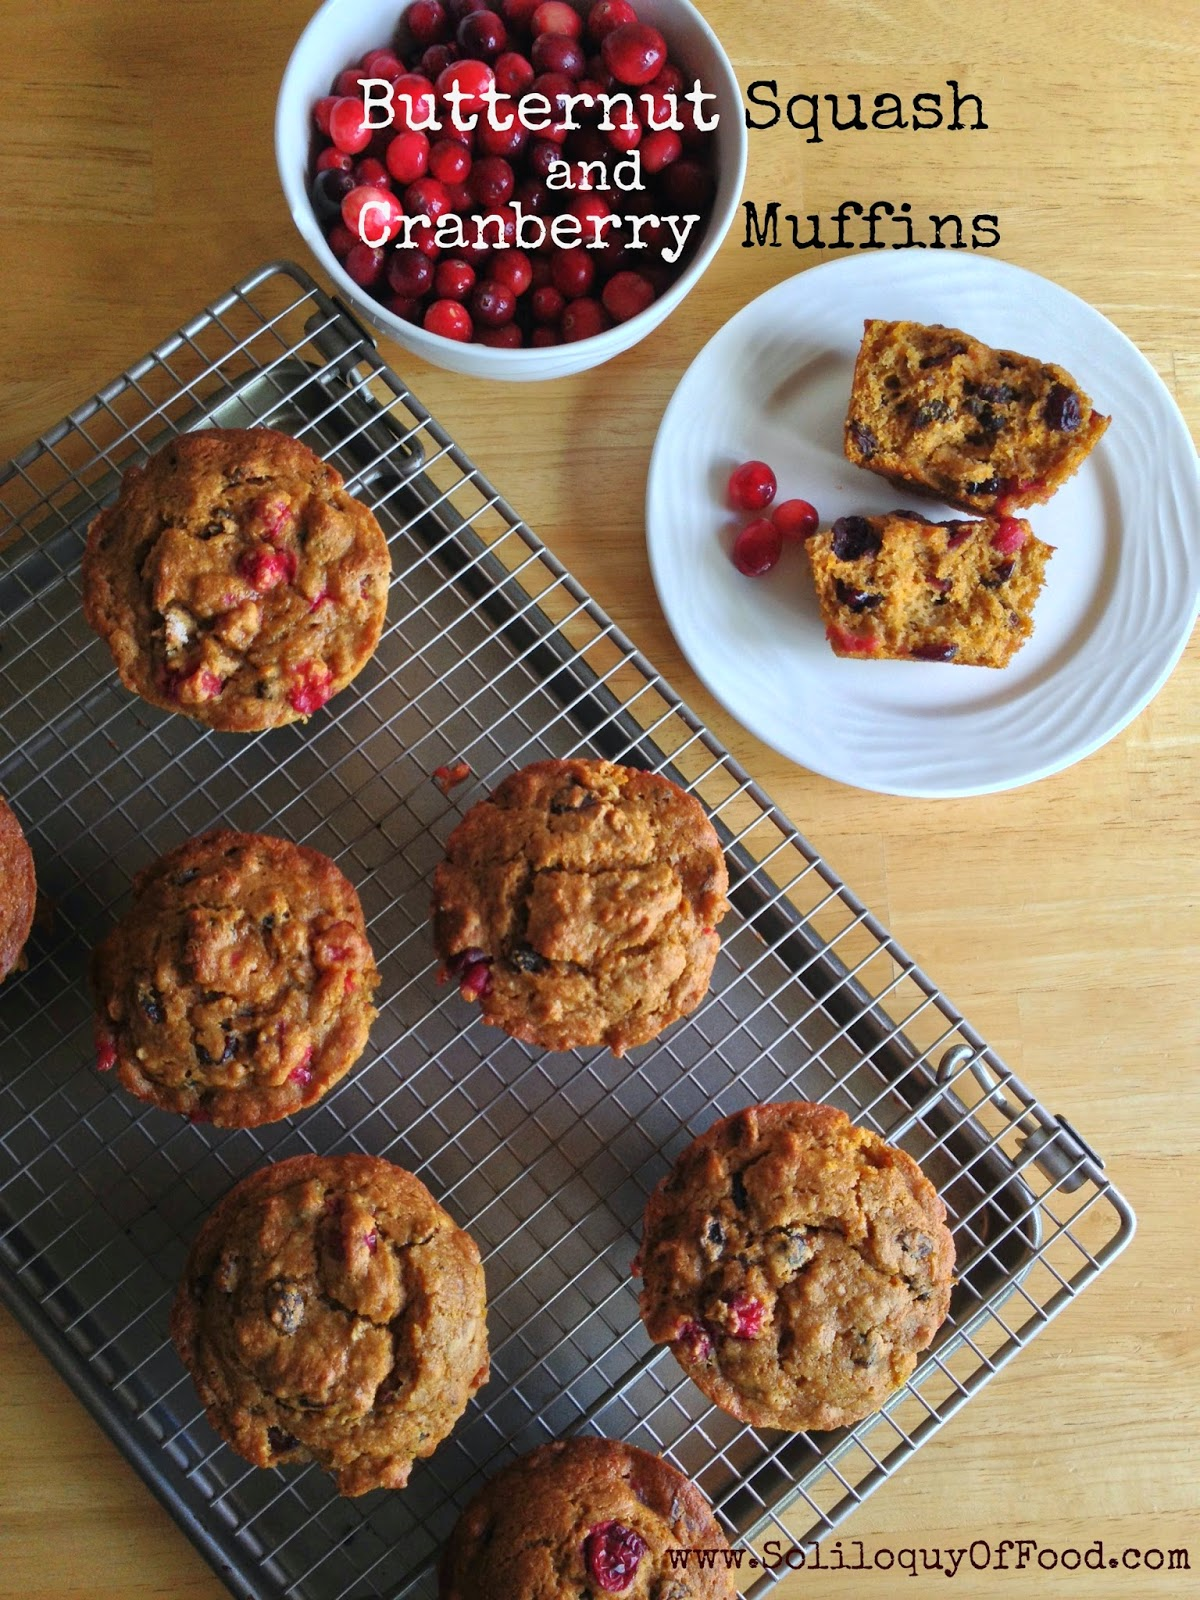 Butternut Squash and Cranberry Muffins - turn Thanksgiving leftovers into these muffins!  www.soliloquyoffood.com